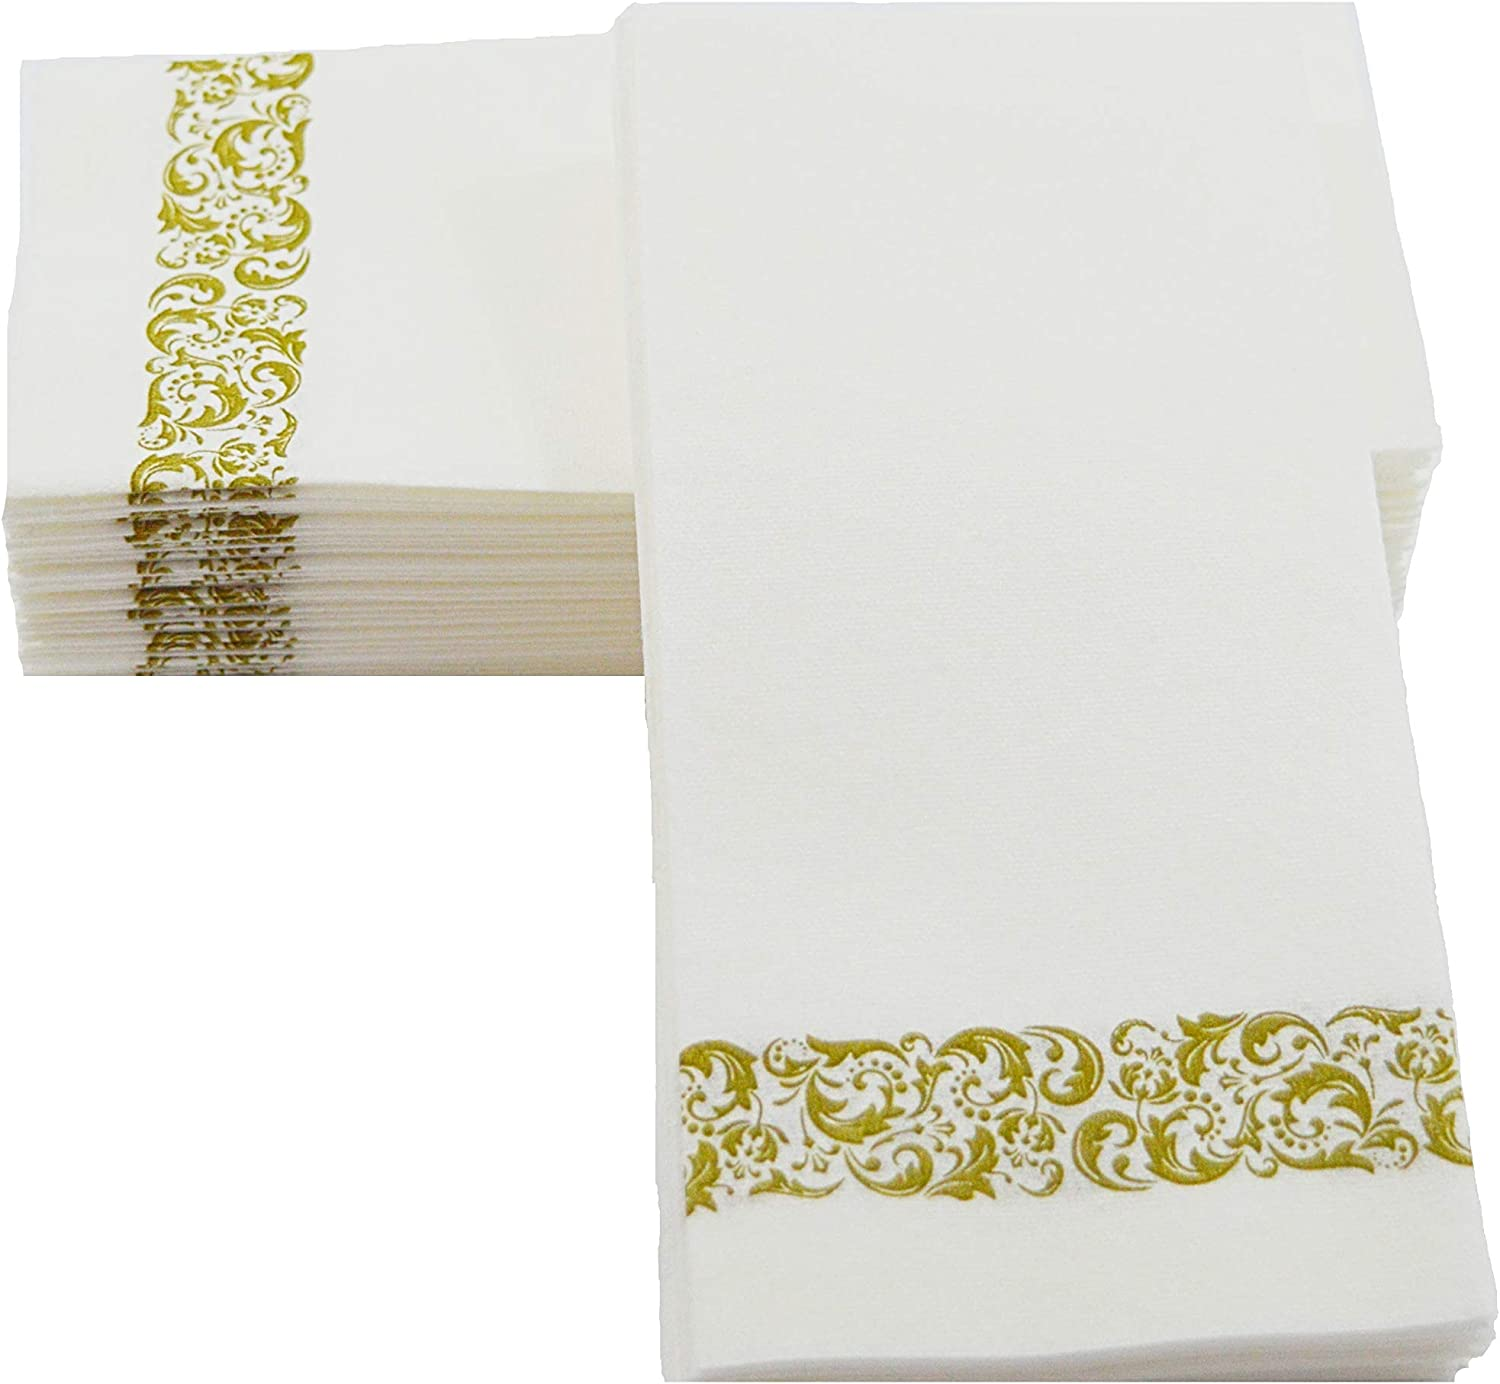 100 The Best Quality Elegant Disposable Guest Napkins | Soft and Absorbent Linen-Feel Hand Napkins | Durable Decorative Bathroom Hand Napkins | Good for Kitchen, Parties, Weddings, Dinner or Events